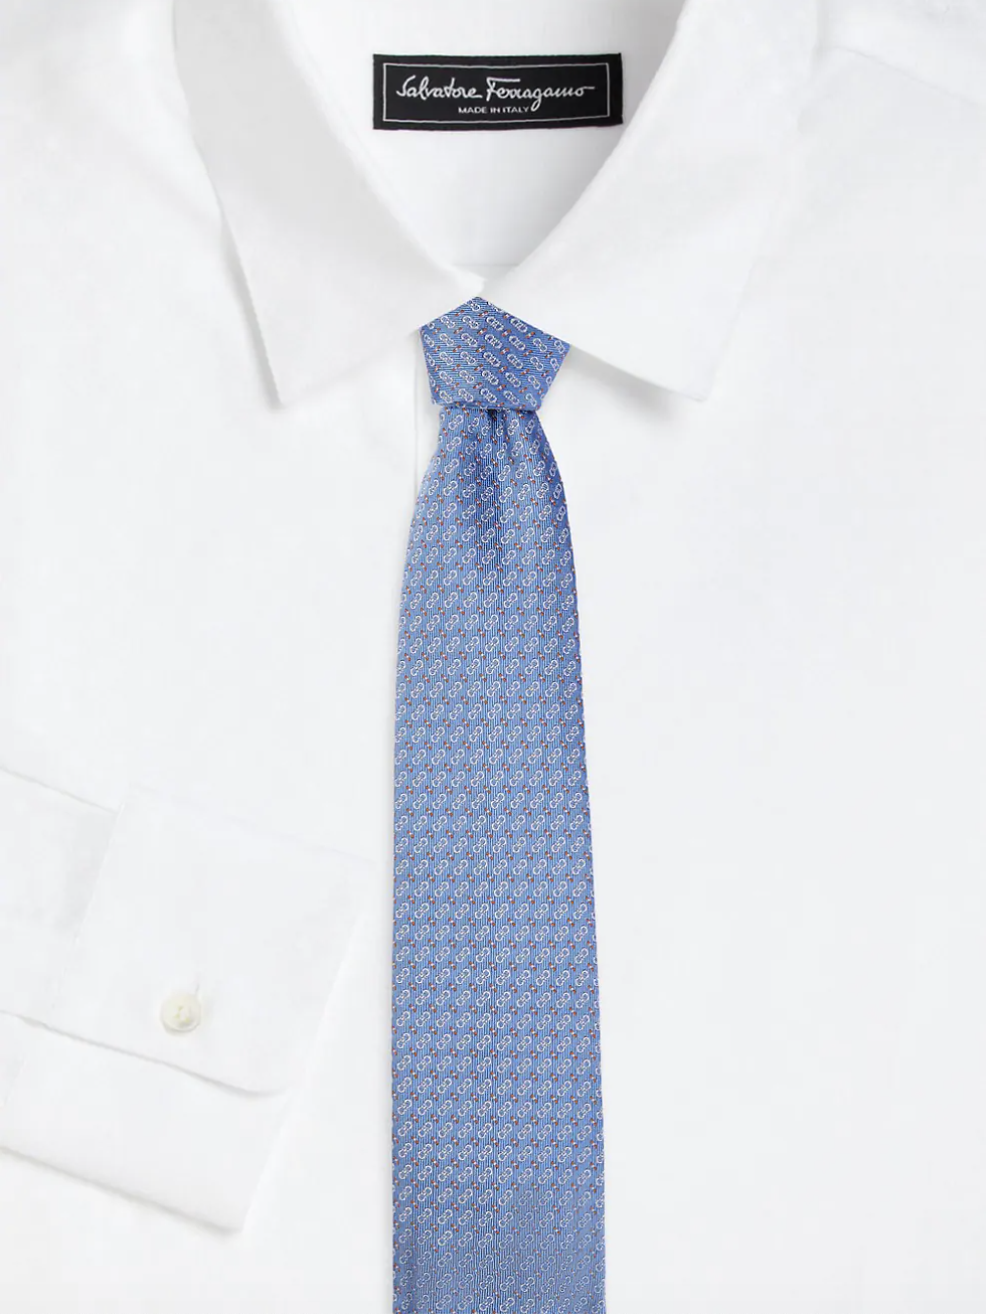 blue patterned silk tie on white collared shirt